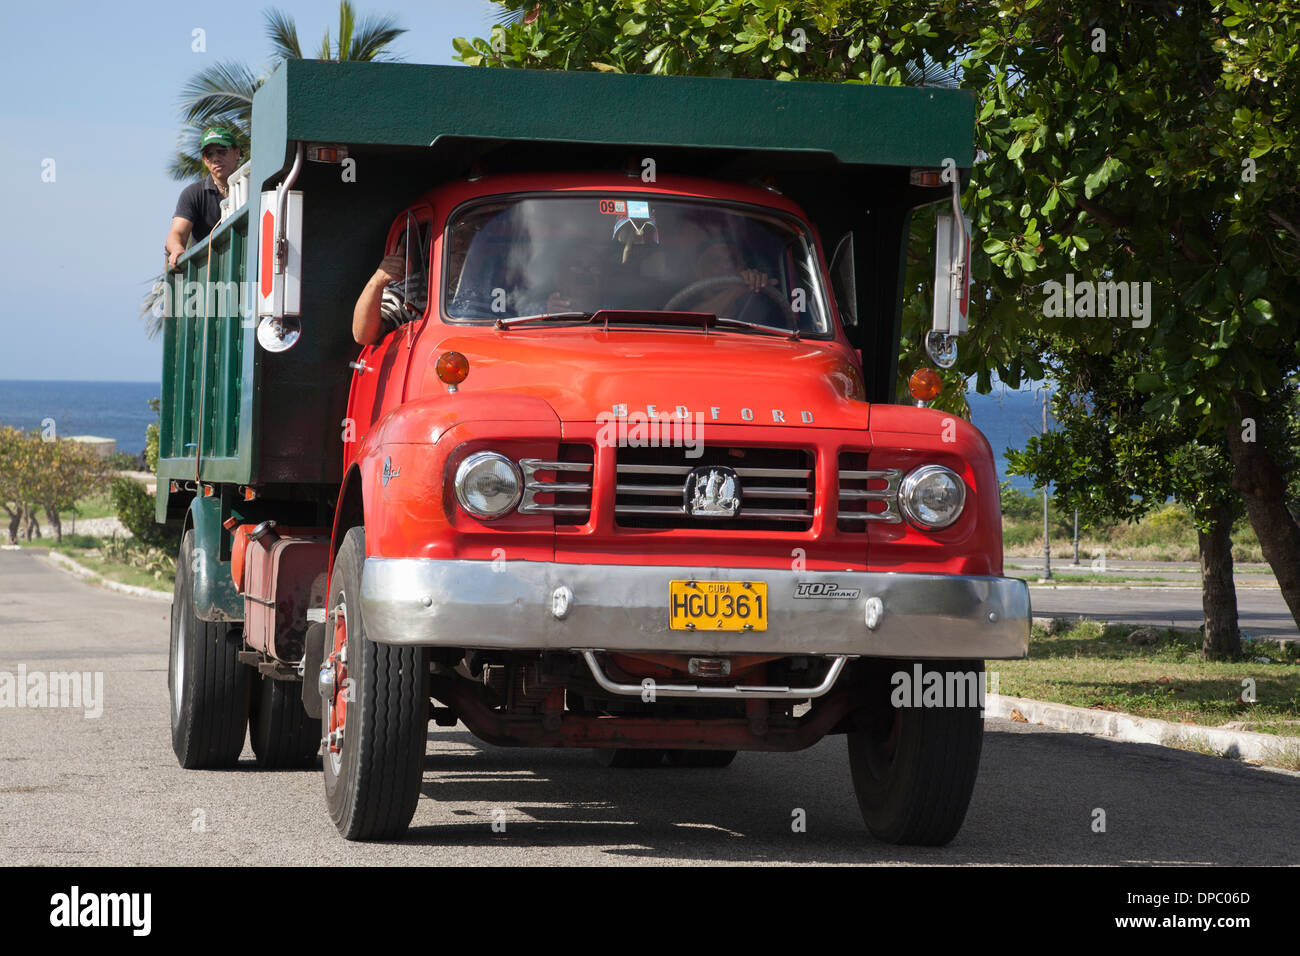 Immaculately maintained 1960s British Bedford TJ truck, among many vintage vehicles still surviving in Cuba, - Stock Image